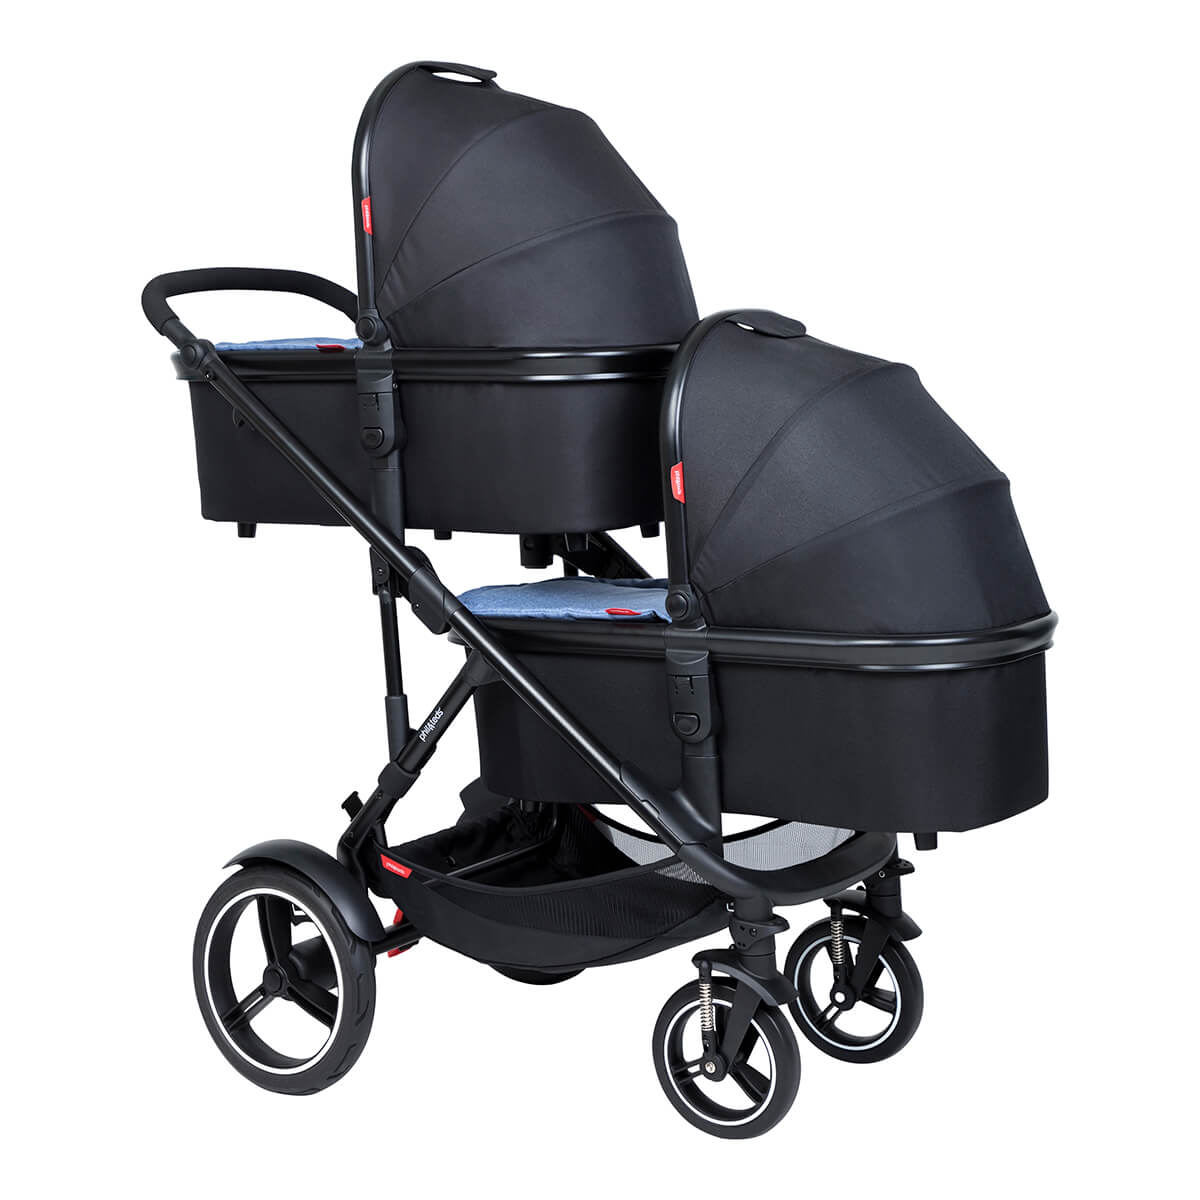 https://cdn.accentuate.io/4384006013025/19793940447402/philteds-voyager-inline-buggy-with-double-snug-carrycots-v1626147760112.jpg?1200x1200